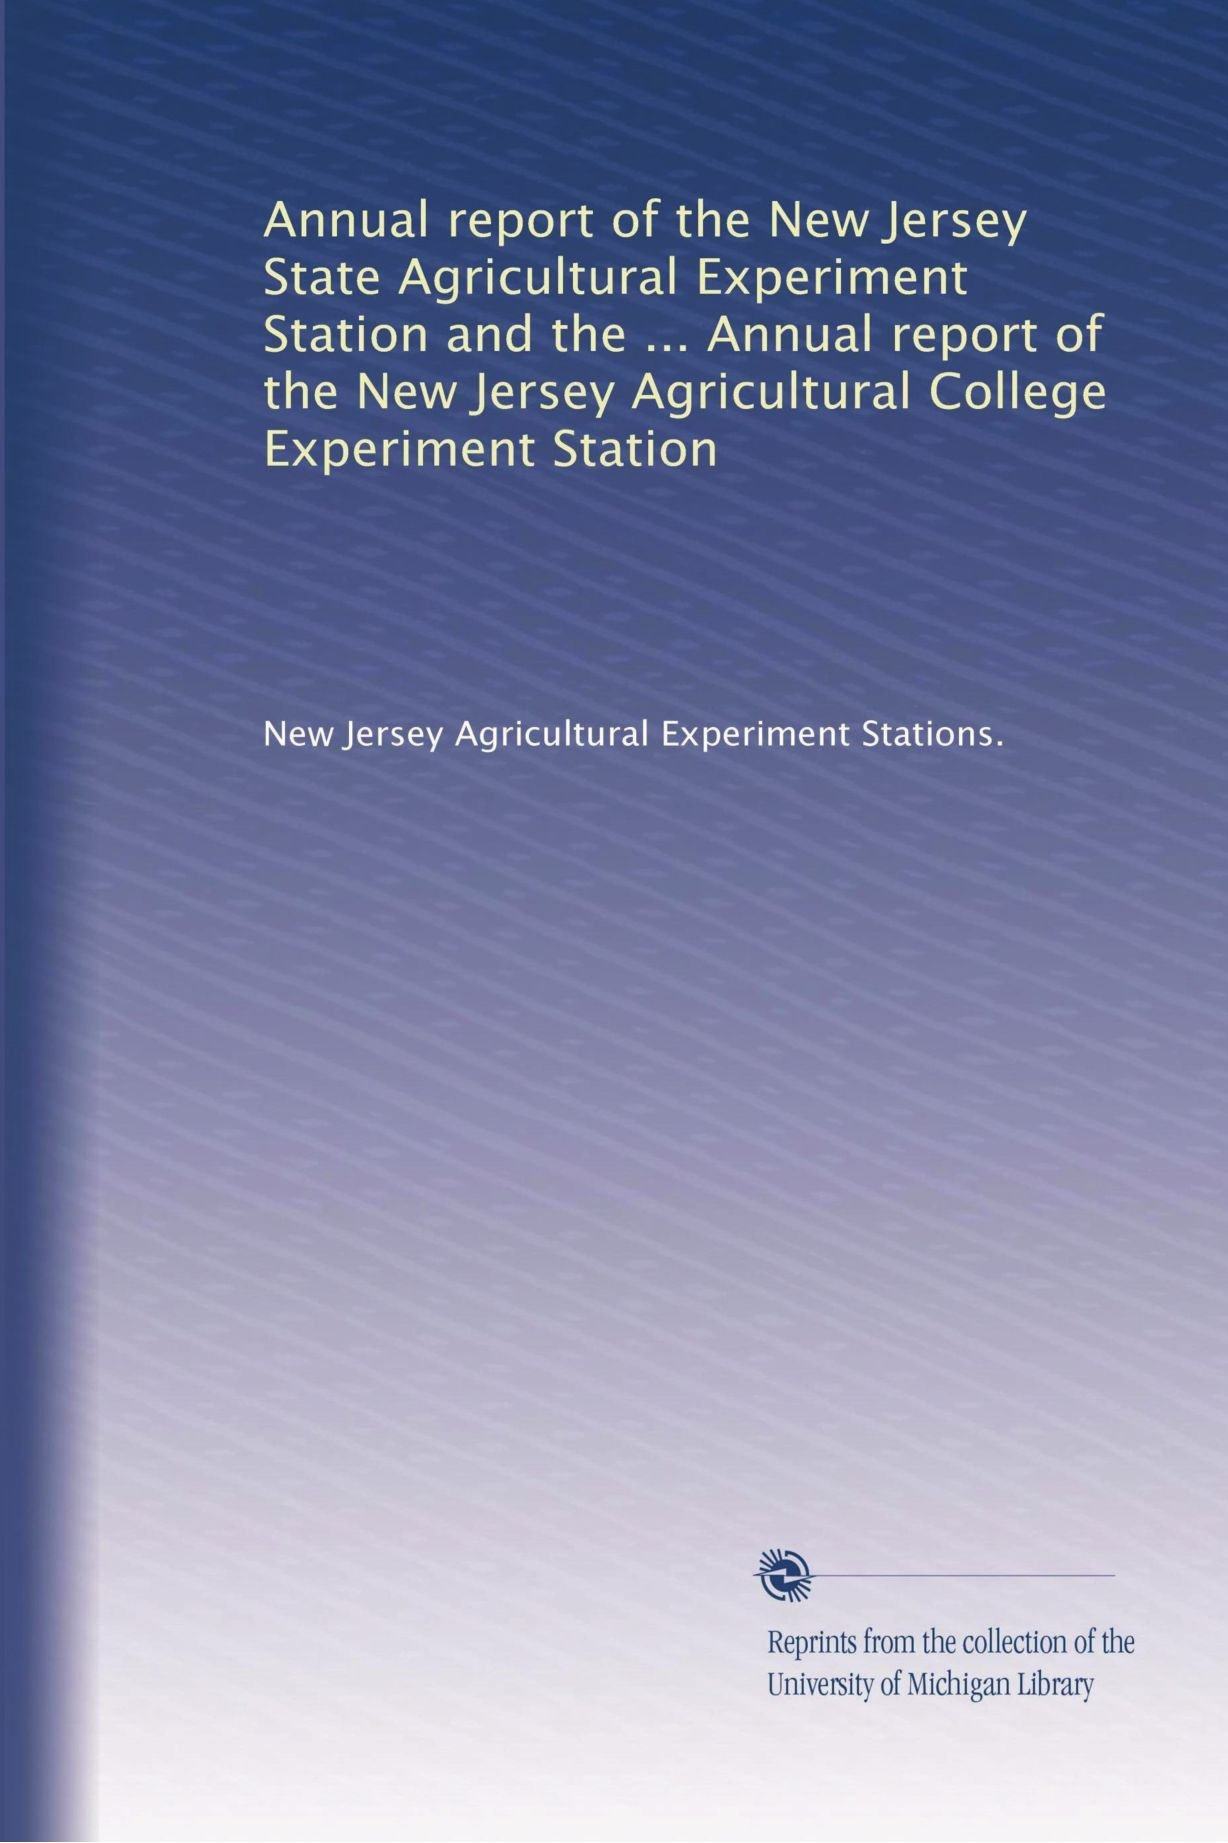 Annual report of the New Jersey State Agricultural Experiment Station and the ... Annual report of the New Jersey Agricultural College Experiment Station ebook